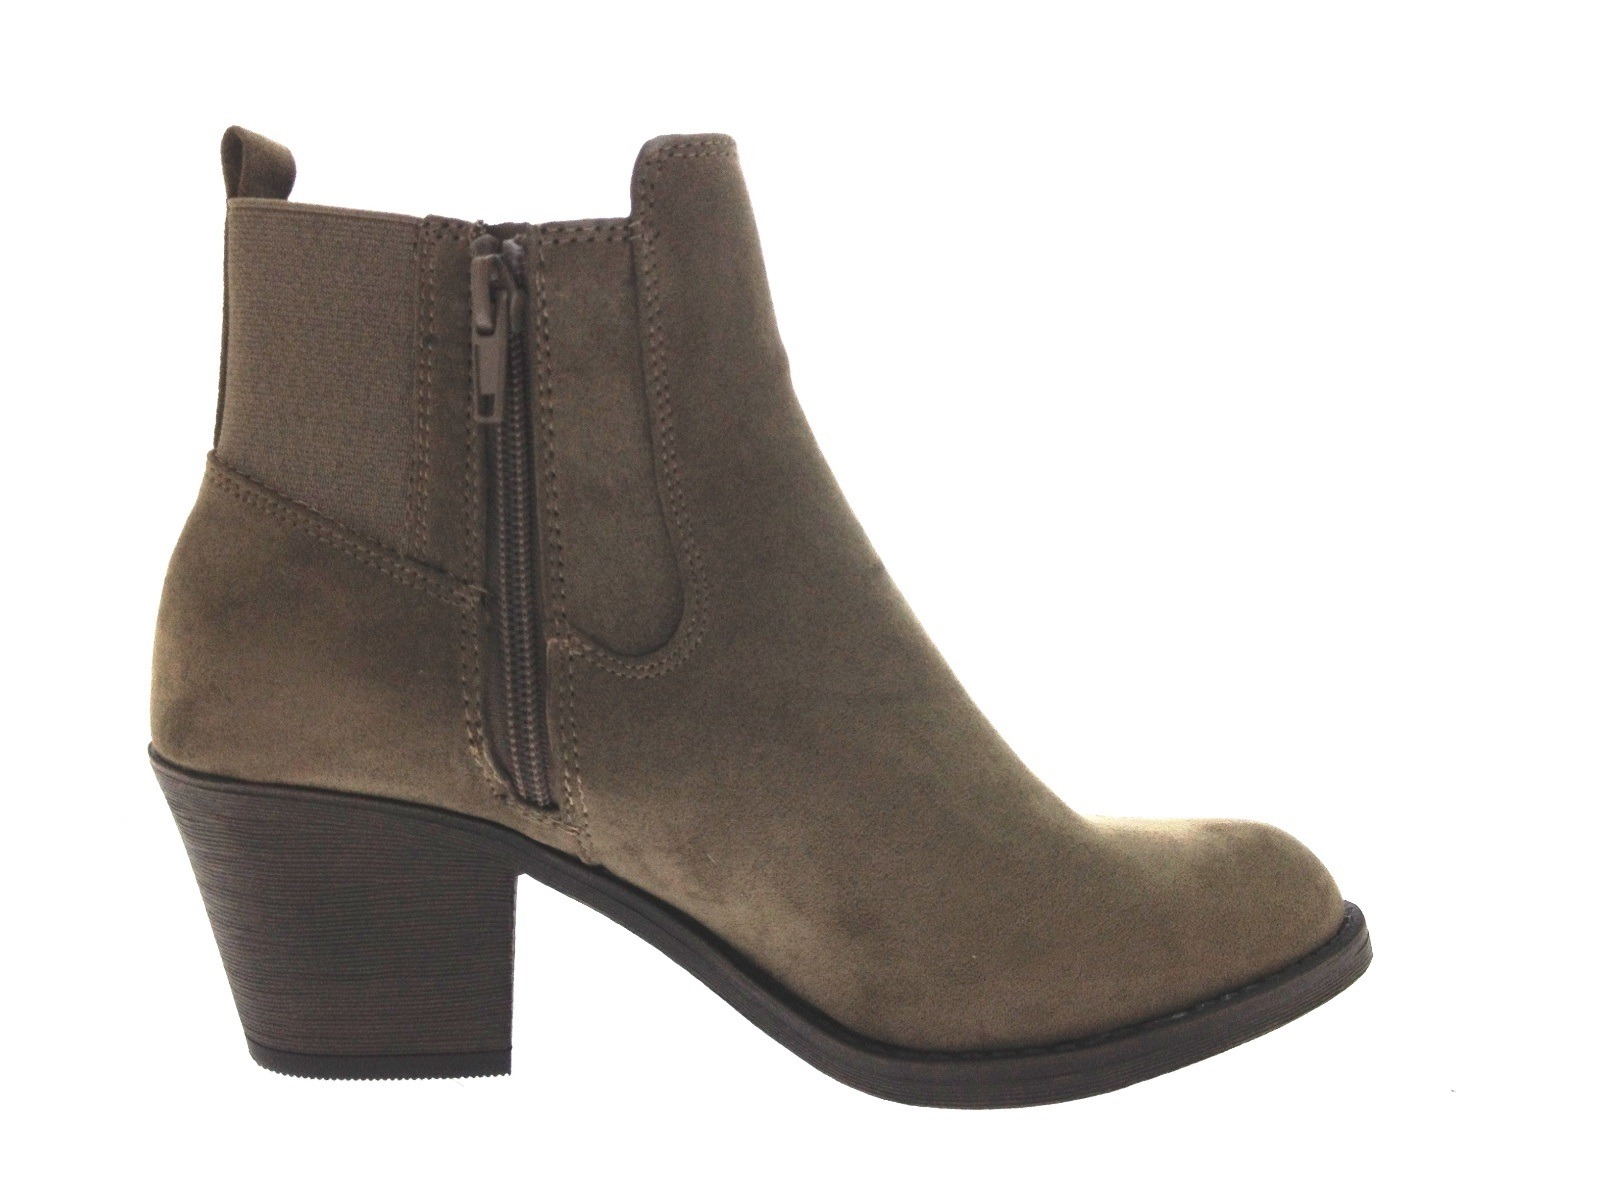 Innovative You Can Roll The Tops Down To Expose The Wool For Style, Or Flip Them Back Up To Keep More Of Your Ankle  These Boots Even